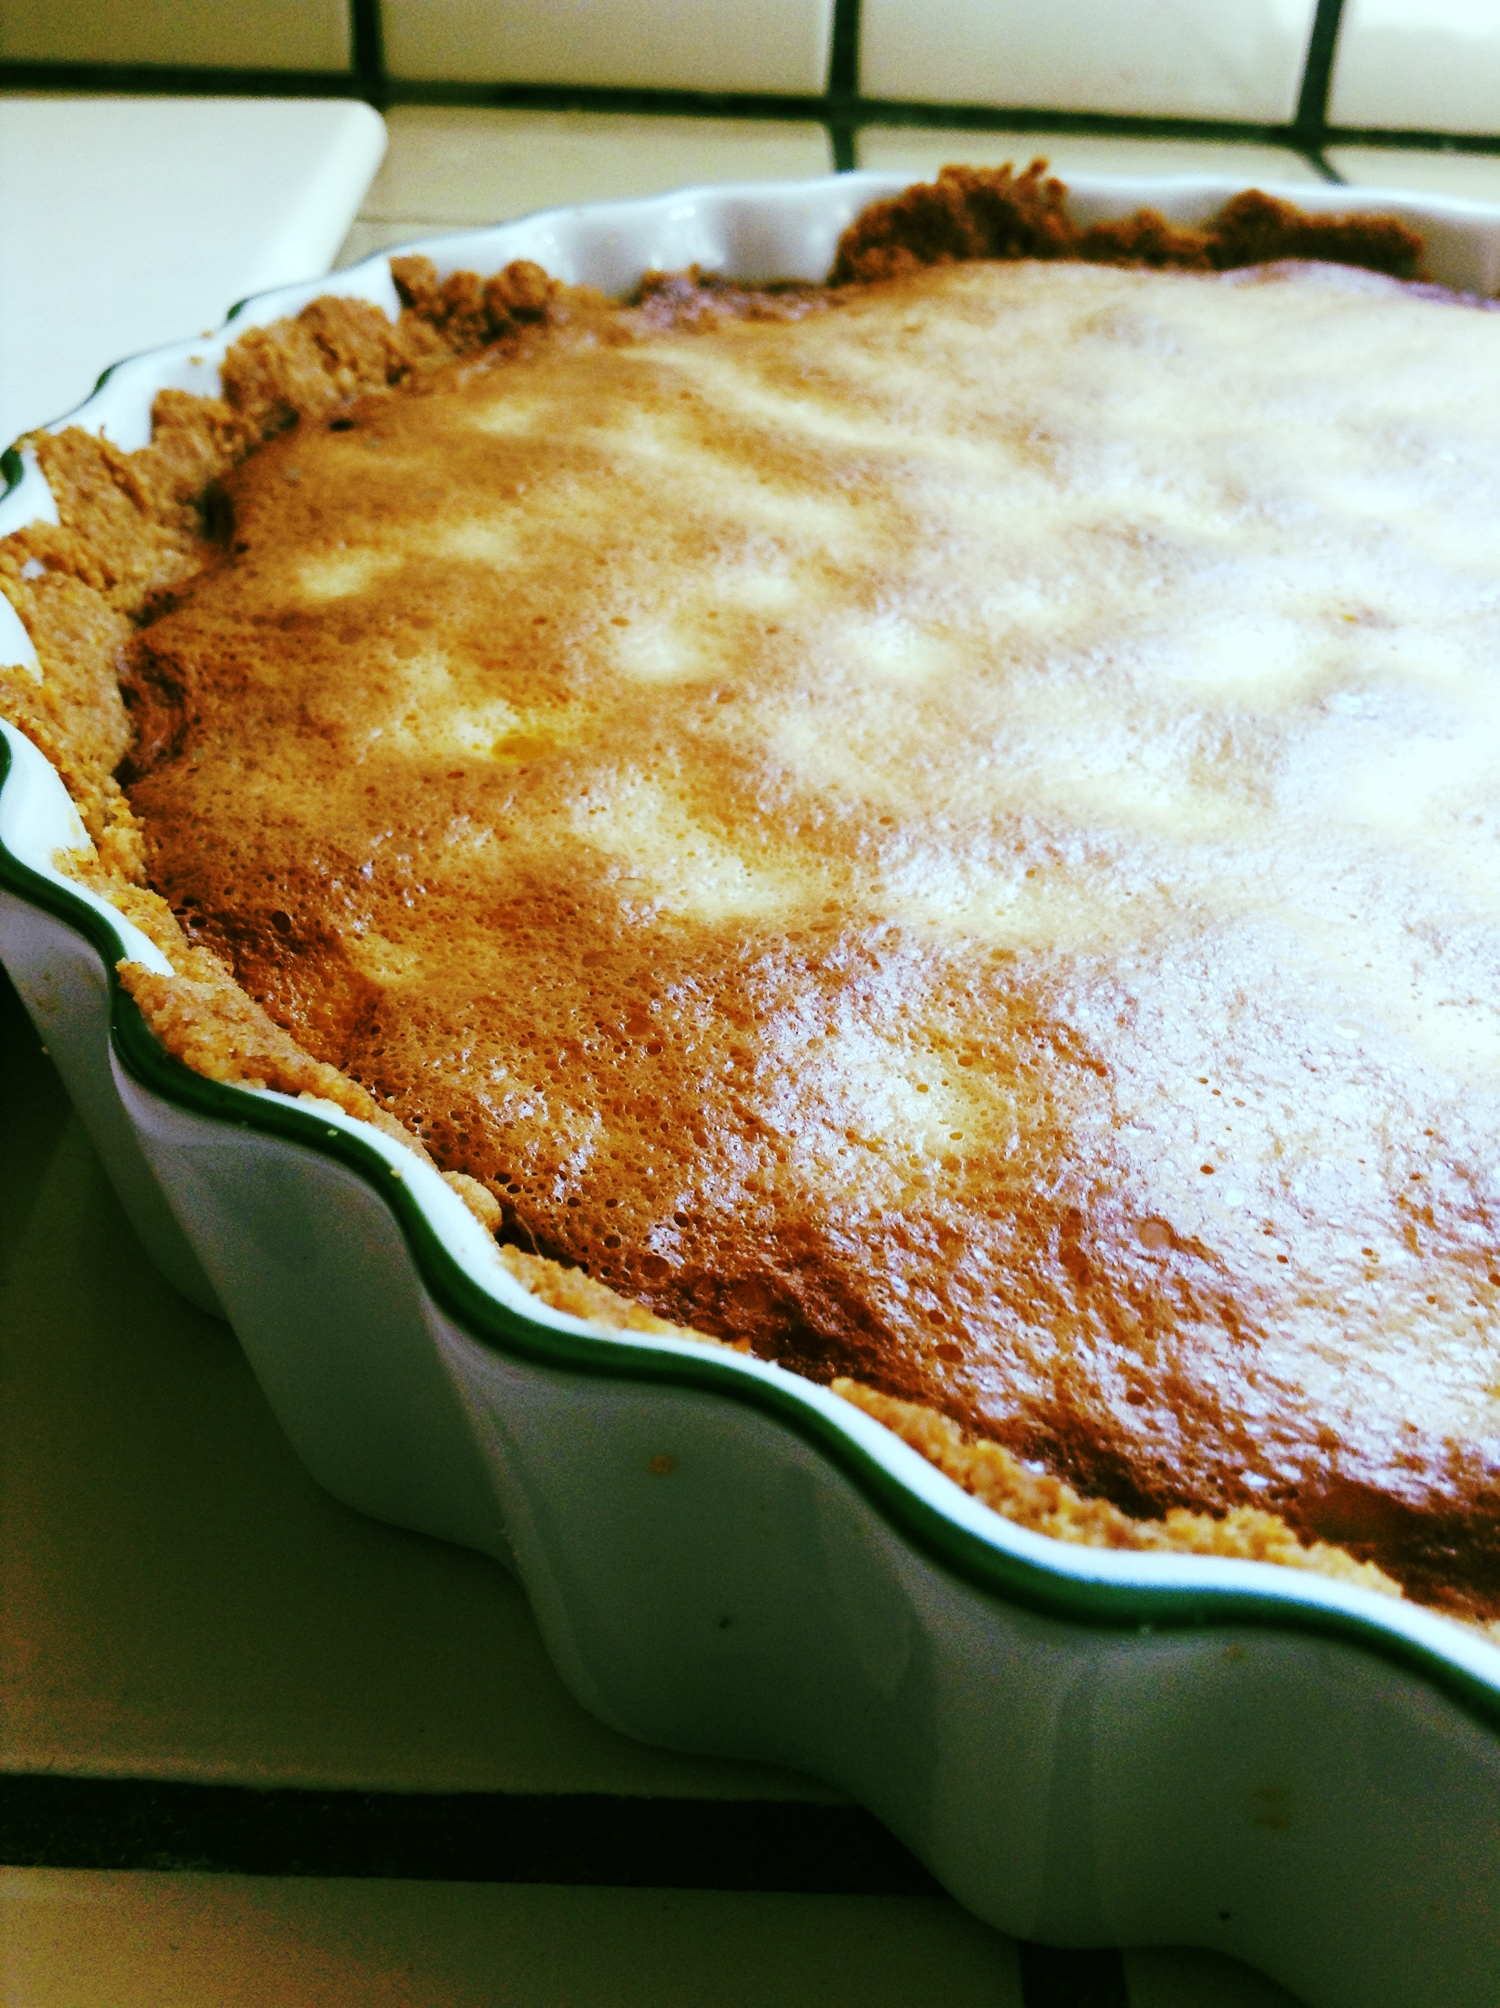 """Calories and cholesterol be damned, there's a lemon tart in the house.         Normal   0             false   false   false     EN-US   X-NONE   X-NONE                                                                                                                                                                                                                                                                                                                                                                           /* Style Definitions */  table.MsoNormalTable {mso-style-name:""""Table Normal""""; mso-tstyle-rowband-size:0; mso-tstyle-colband-size:0; mso-style-noshow:yes; mso-style-priority:99; mso-style-parent:""""""""; mso-padding-alt:0in 5.4pt 0in 5.4pt; mso-para-margin-top:0in; mso-para-margin-right:0in; mso-para-margin-bottom:10.0pt; mso-para-margin-left:0in; line-height:115%; mso-pagination:widow-orphan; font-size:11.0pt; font-family:""""Calibri"""",""""sans-serif""""; mso-ascii-font-family:Calibri; mso-ascii-theme-font:minor-latin; mso-hansi-font-family:Calibri; mso-hansi-theme-font:minor-latin;}"""